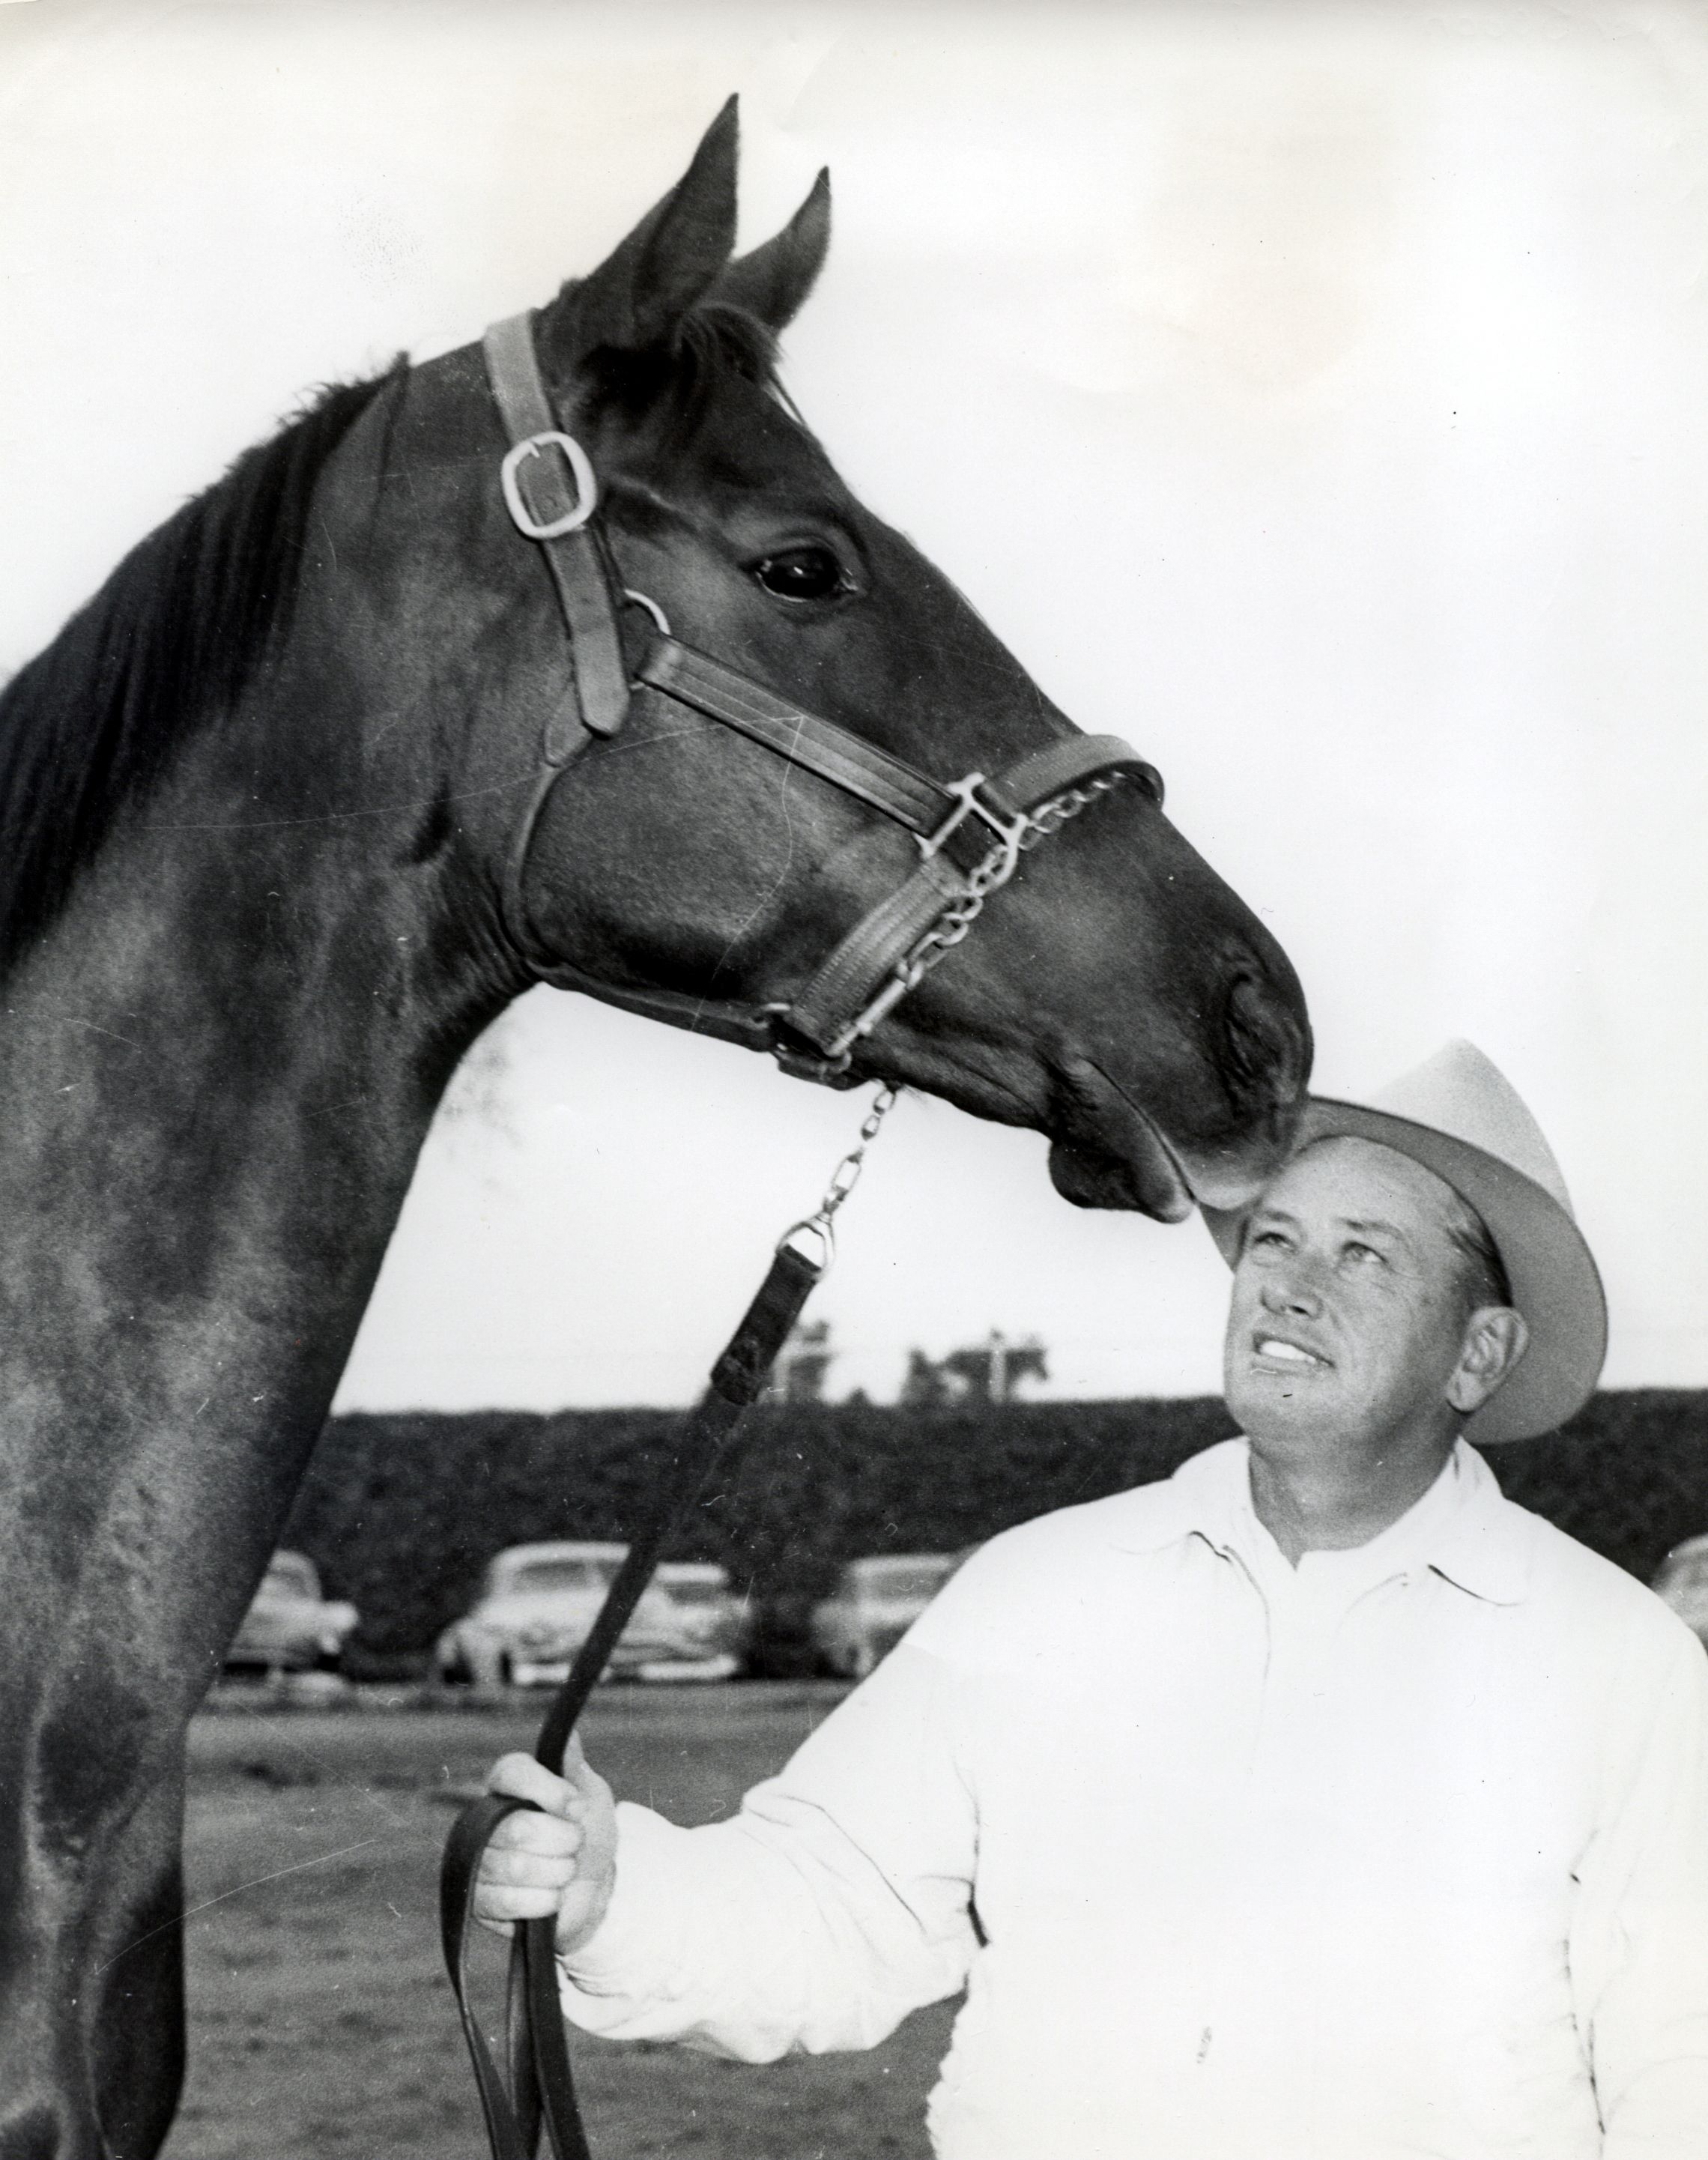 Silver Spoon and Robert Wheeler (Museum Collection)